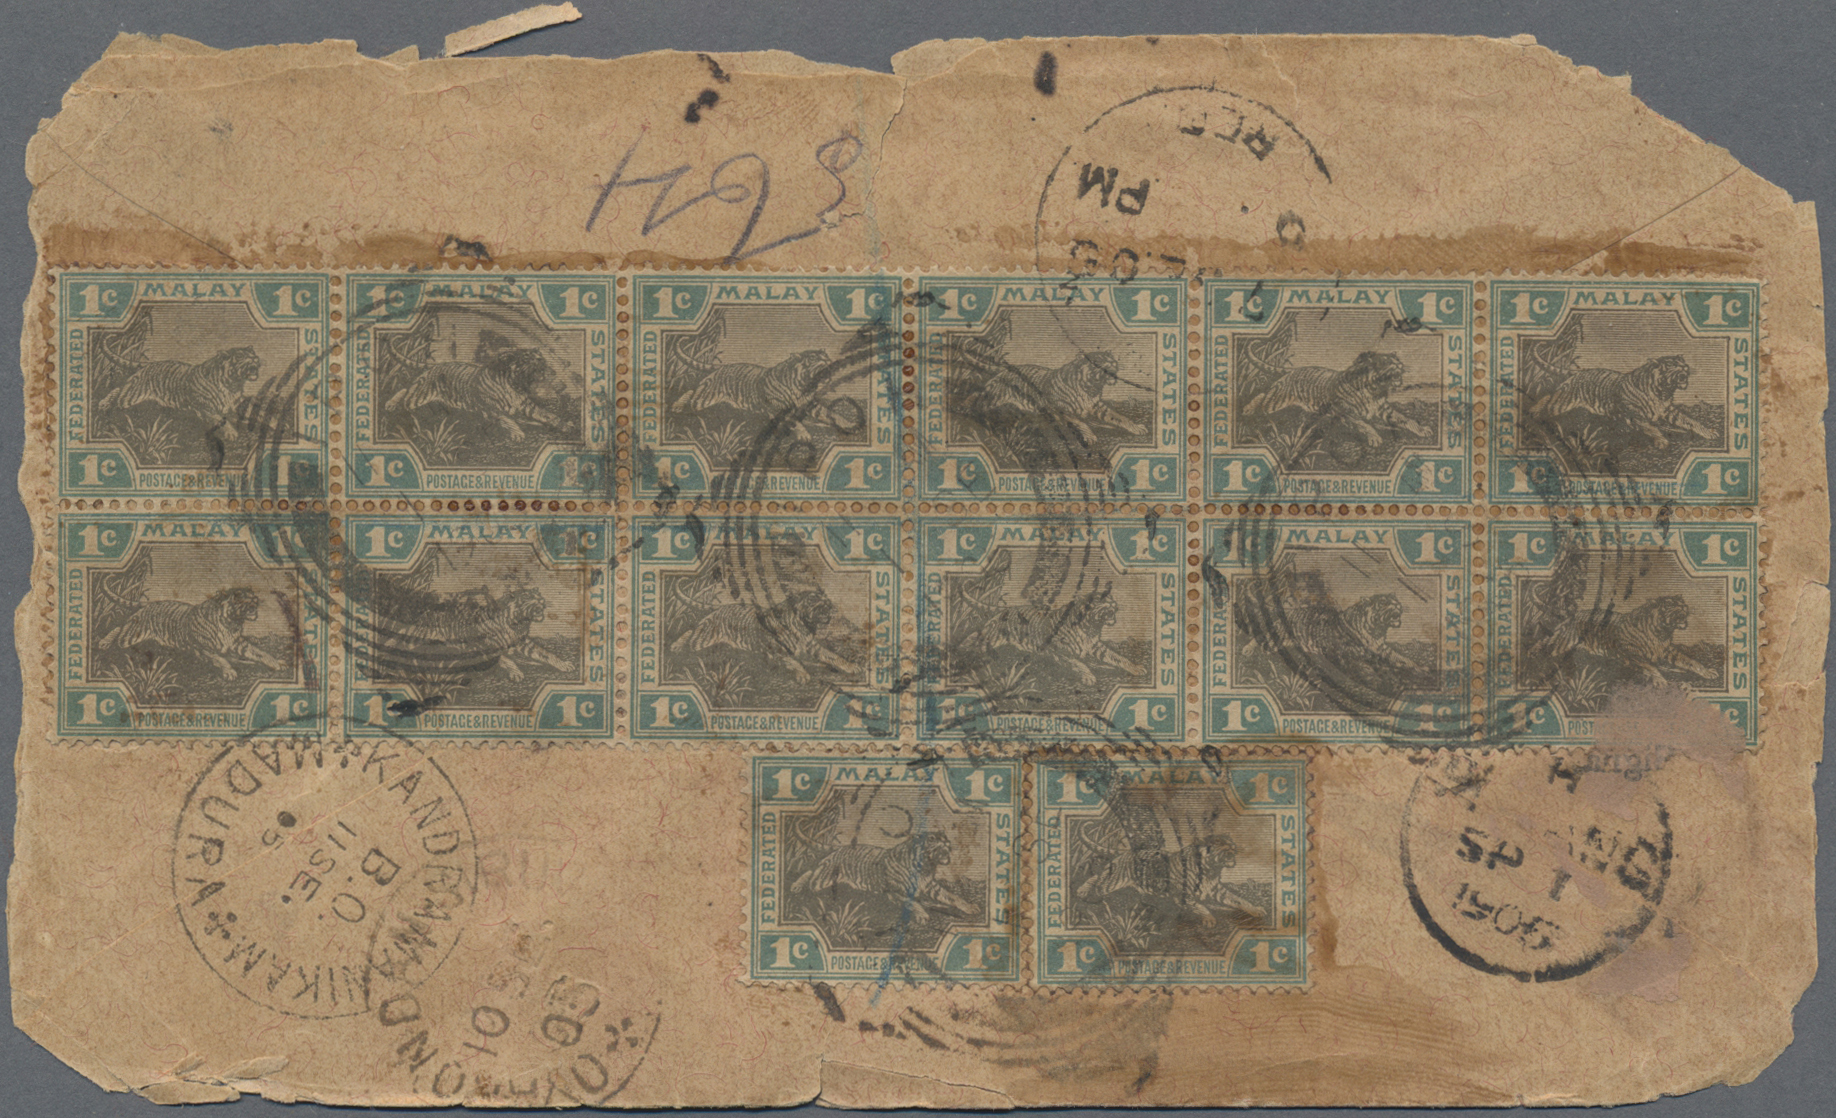 Lot 34720 - Malaiische Staaten - Perak  -  Auktionshaus Christoph Gärtner GmbH & Co. KG Sale #44 Collections Germany